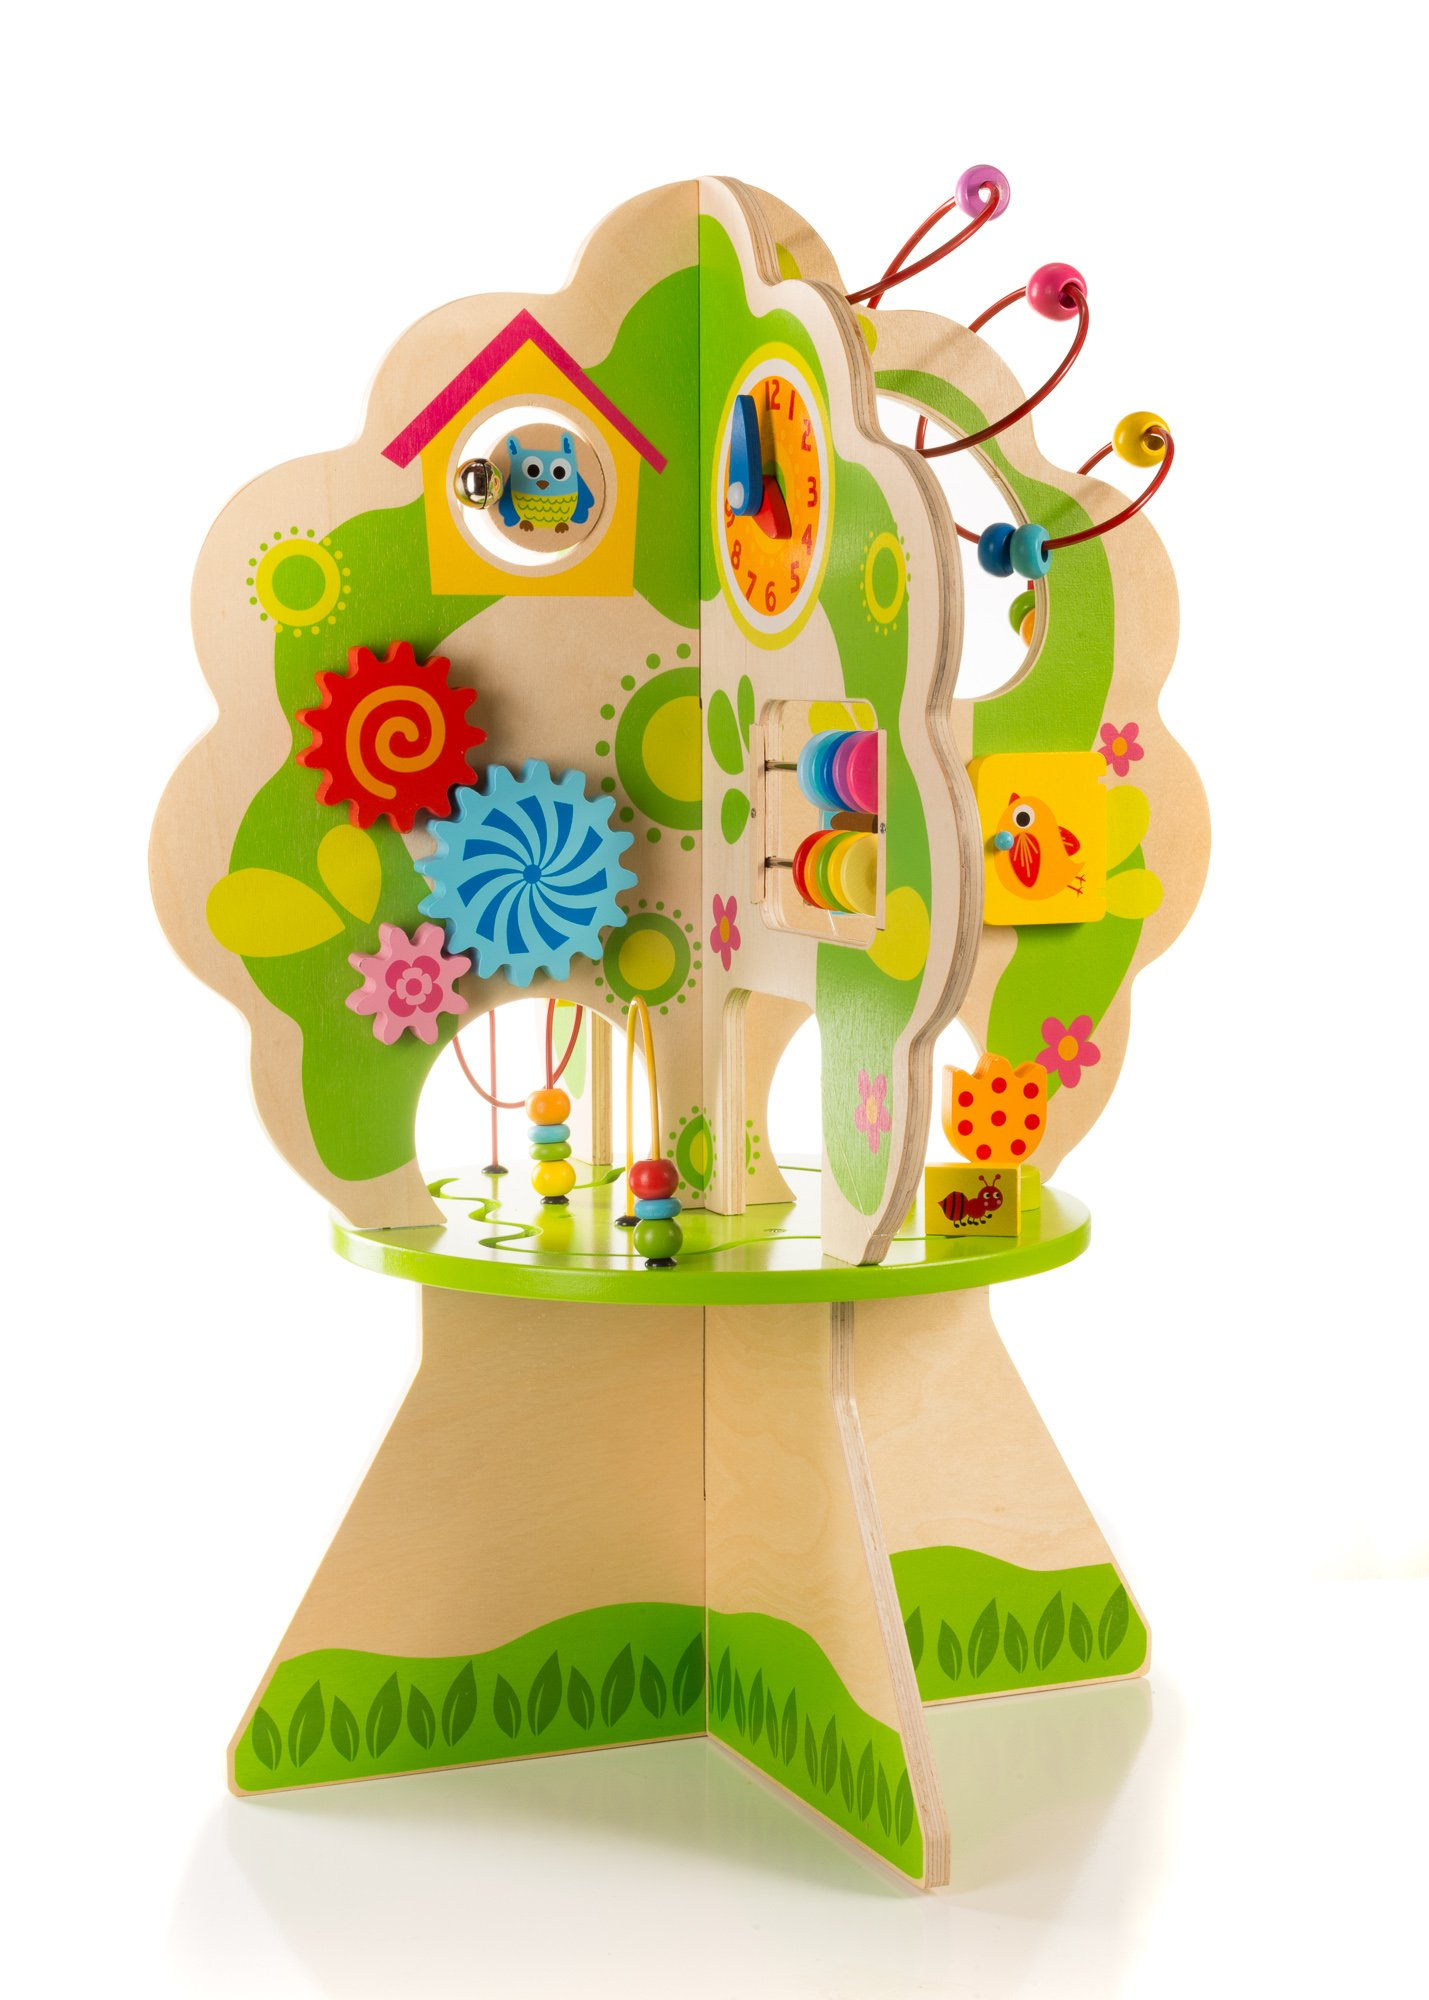 Ray's Toys Deluxe Wooden Activity Tree Center for Toddlers & Kids 1-5 Years –Educational Playstation for Learning Shapes, Colors, Time Telling & Counting –Made of Non-Toxic Wood W/ Water-Based Colors